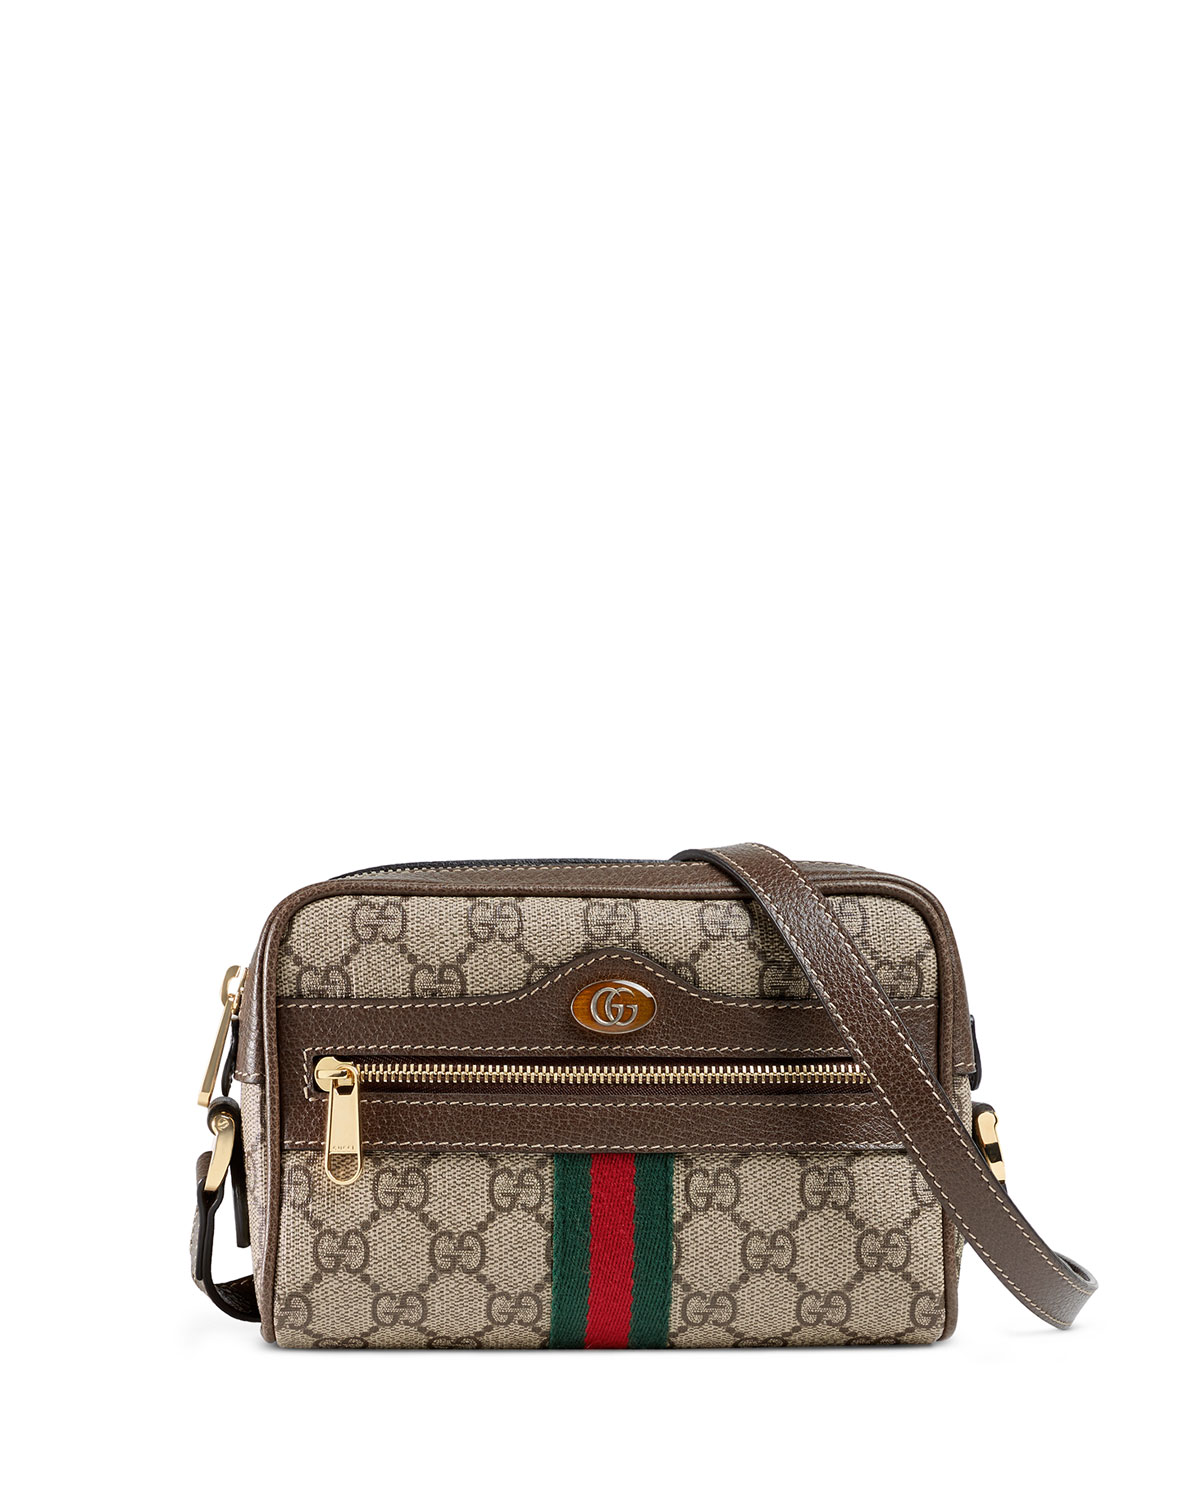 Gucci Ophidia Small GG Supreme Crossbody Bag  f77cb42d455f4